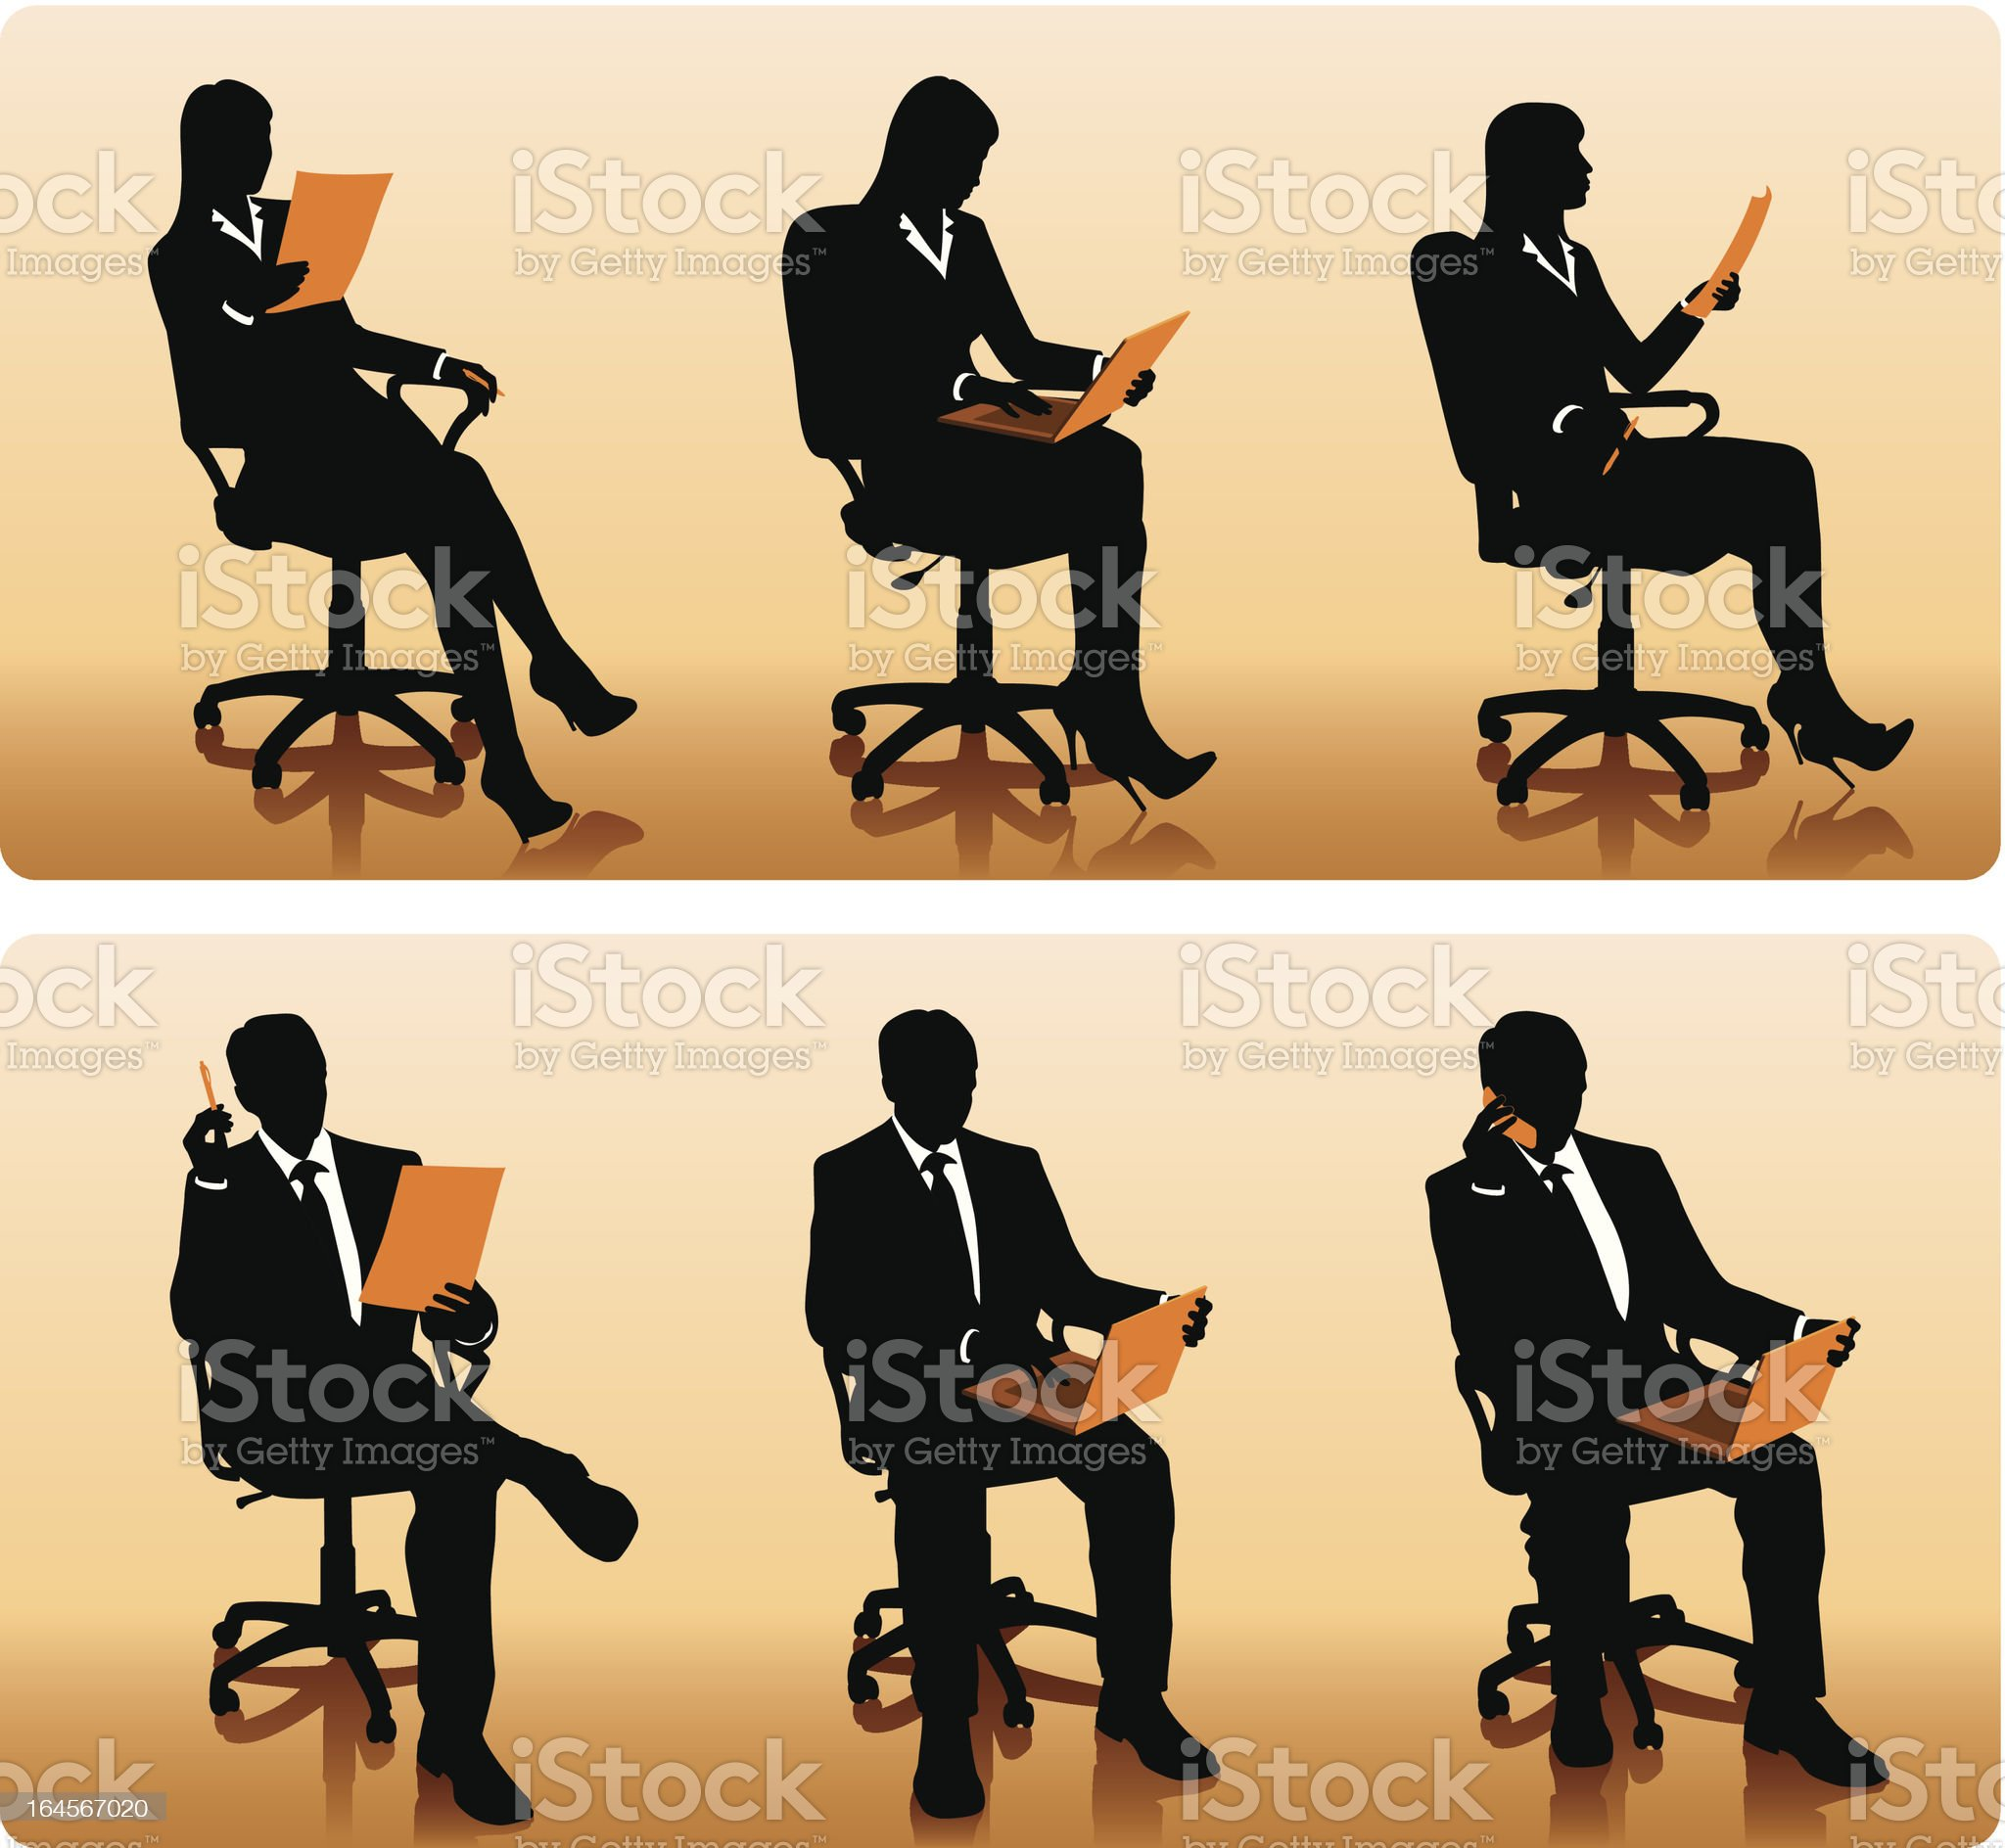 Businessmen silhouettes royalty-free stock vector art